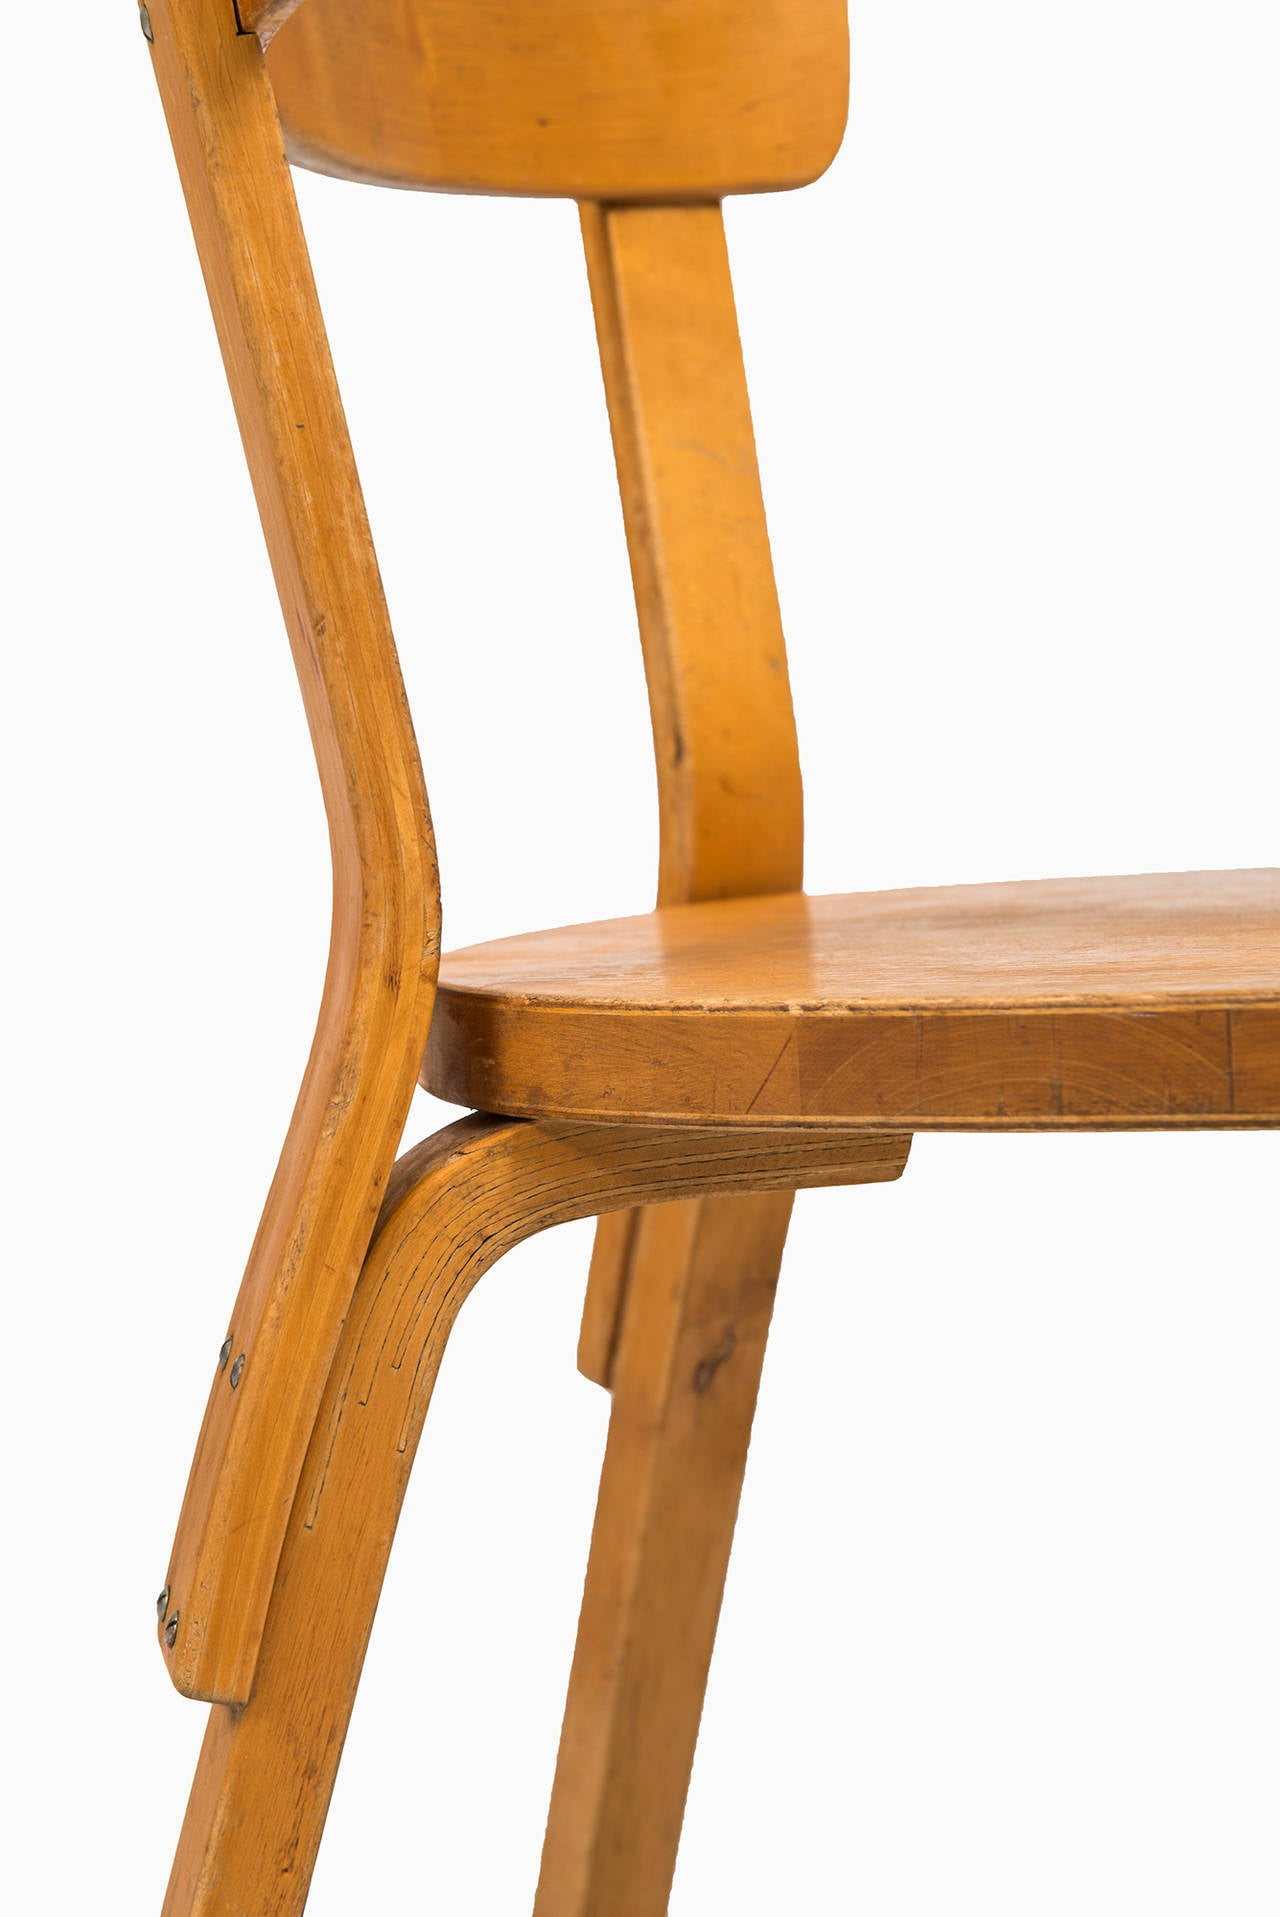 Alvar aalto dining chairs model 69 by artek in finland at for Alvar aalto chaise